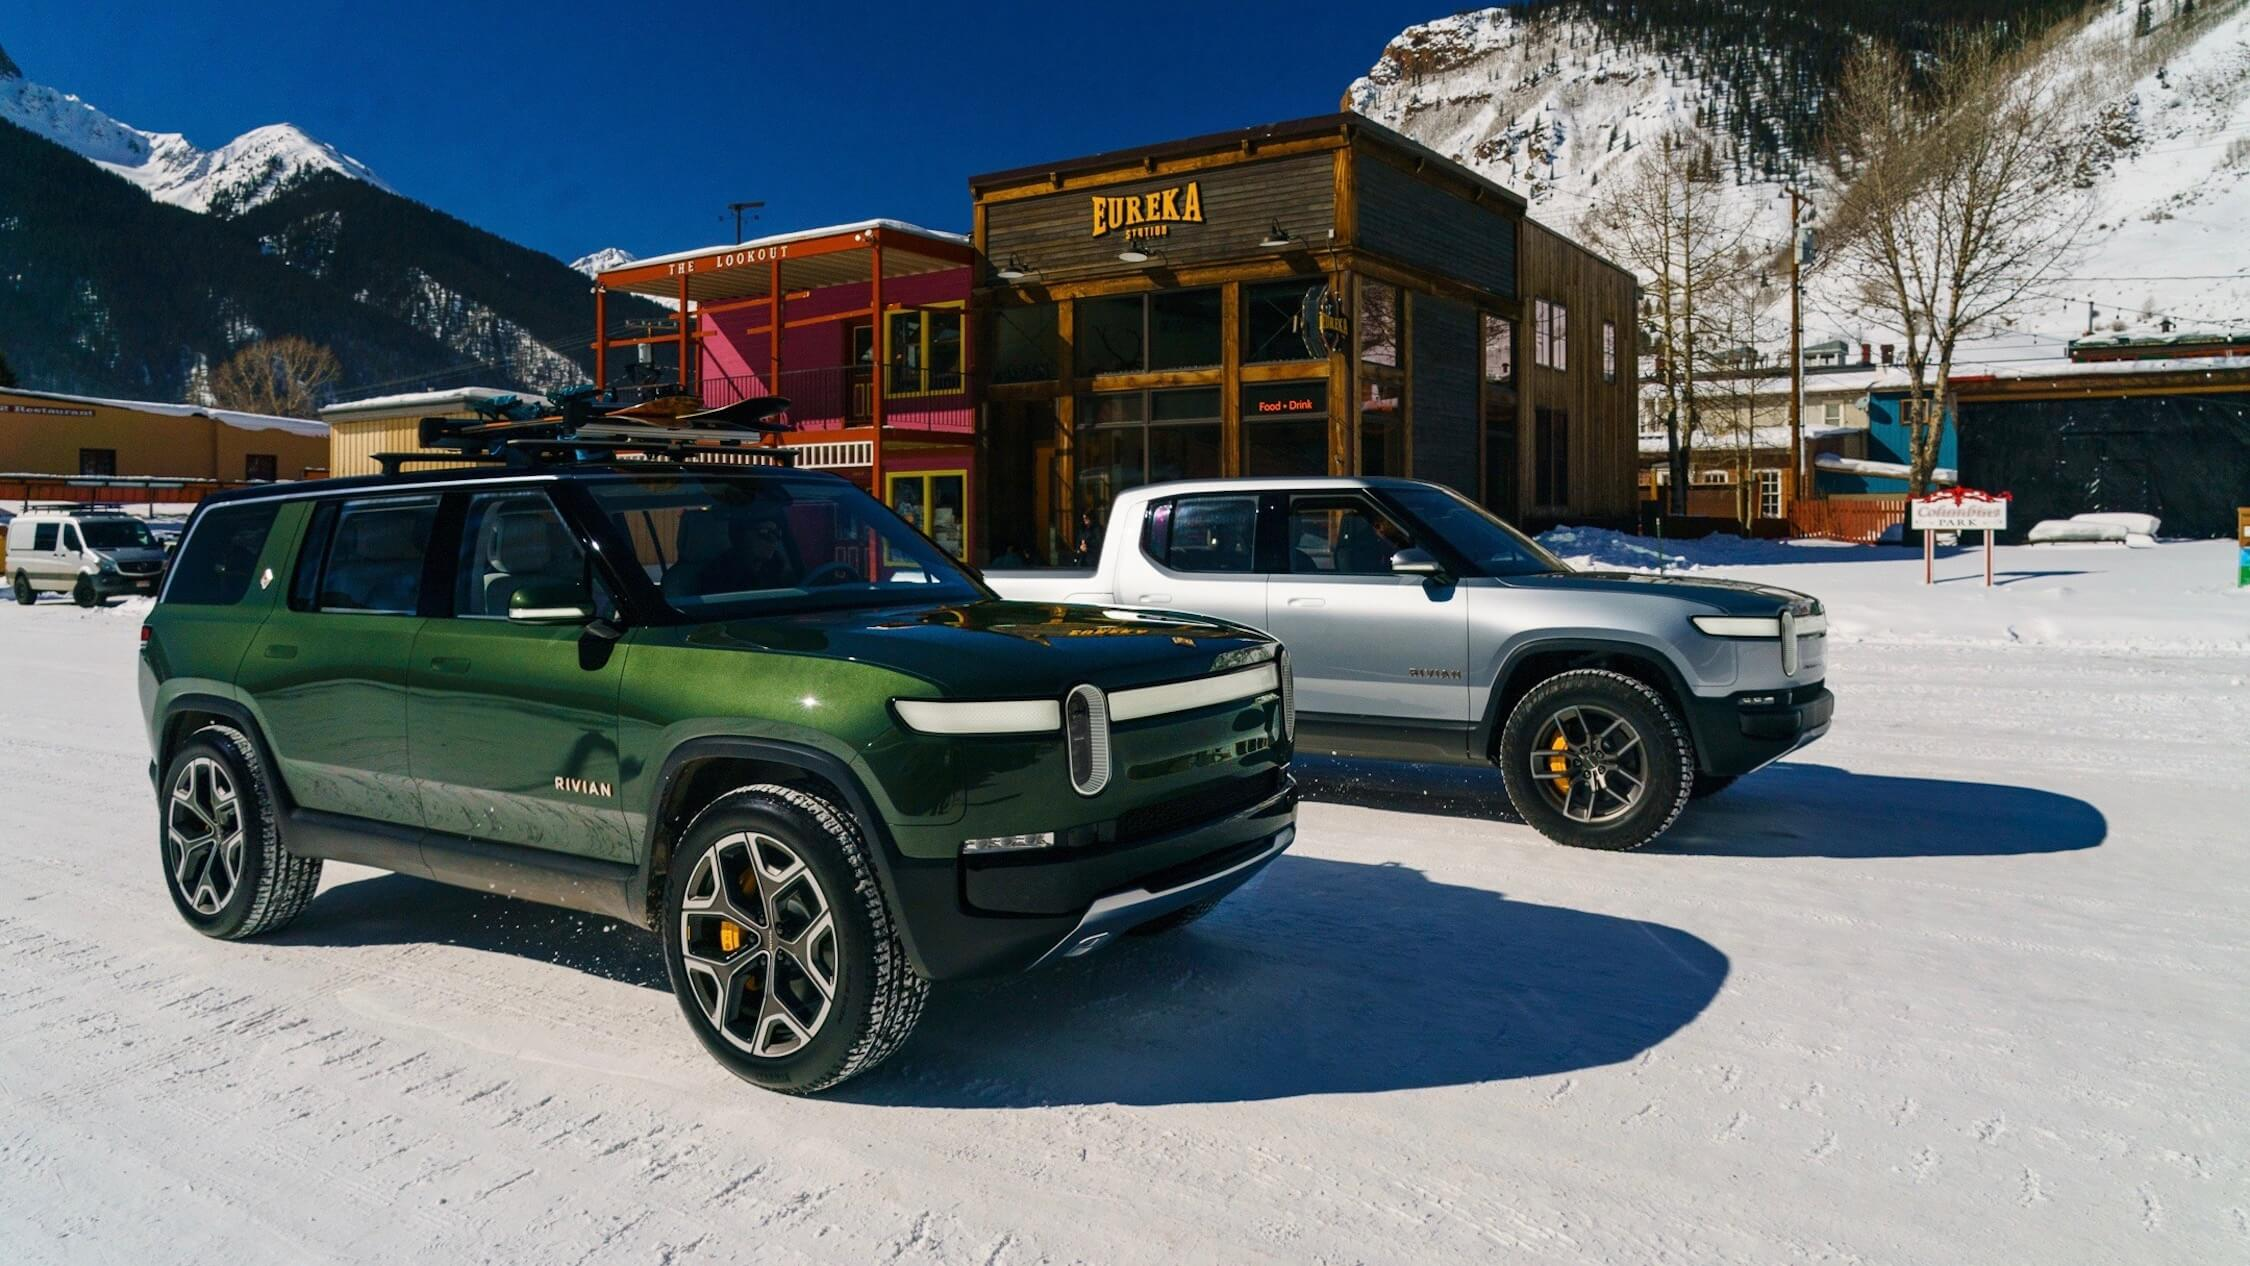 Rivian in snow